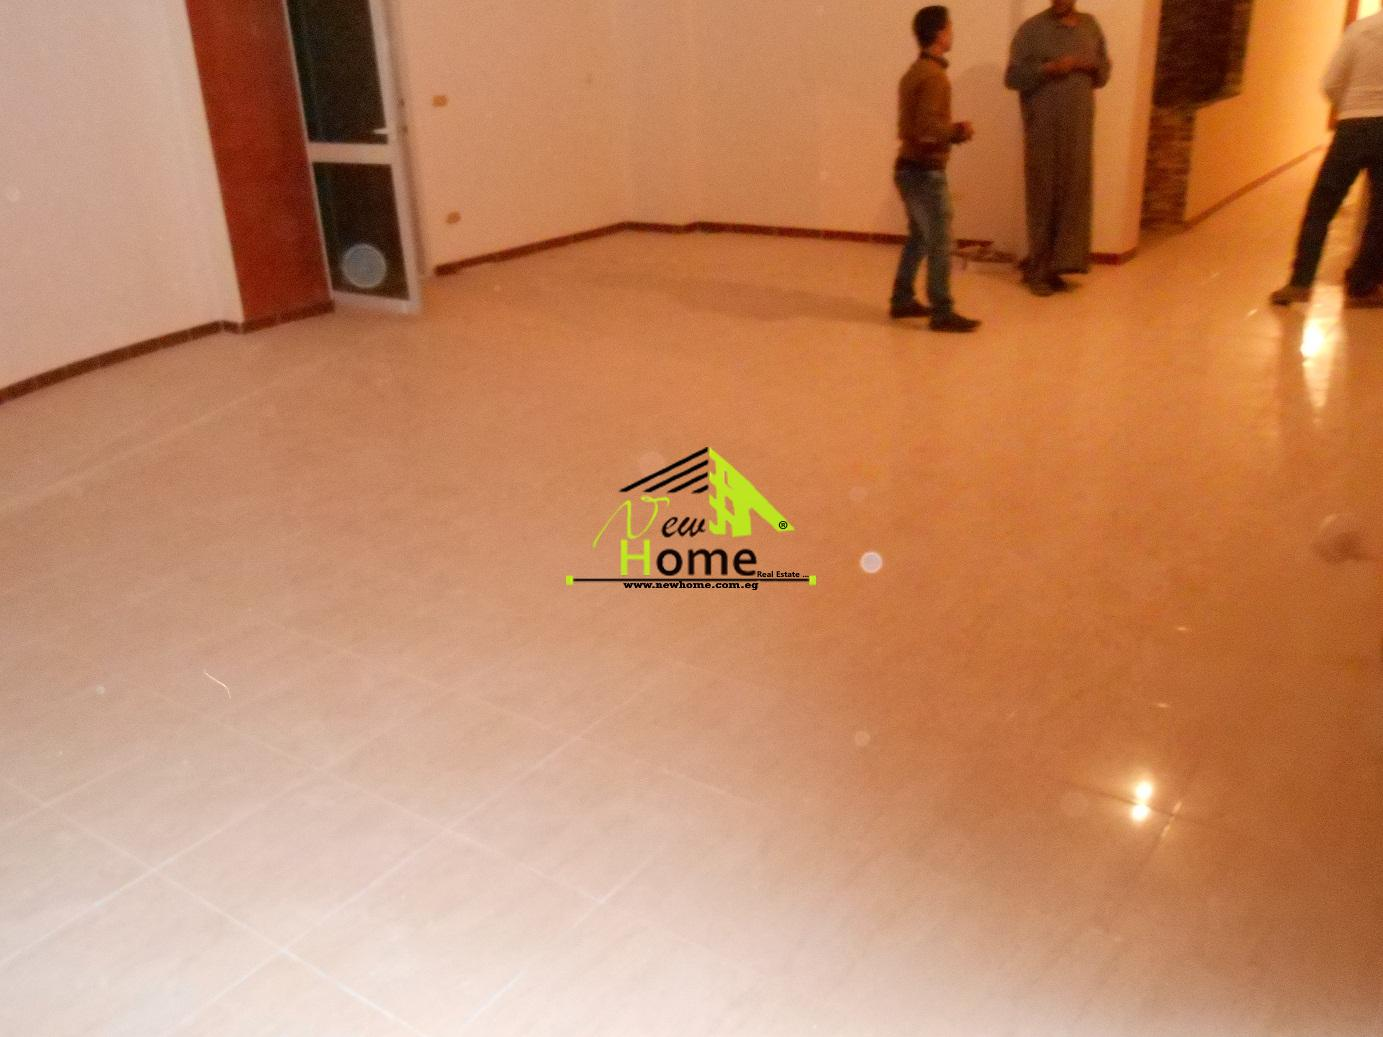 For Rent Flat Villa Yasmin 7 New Cairo near ninety Street